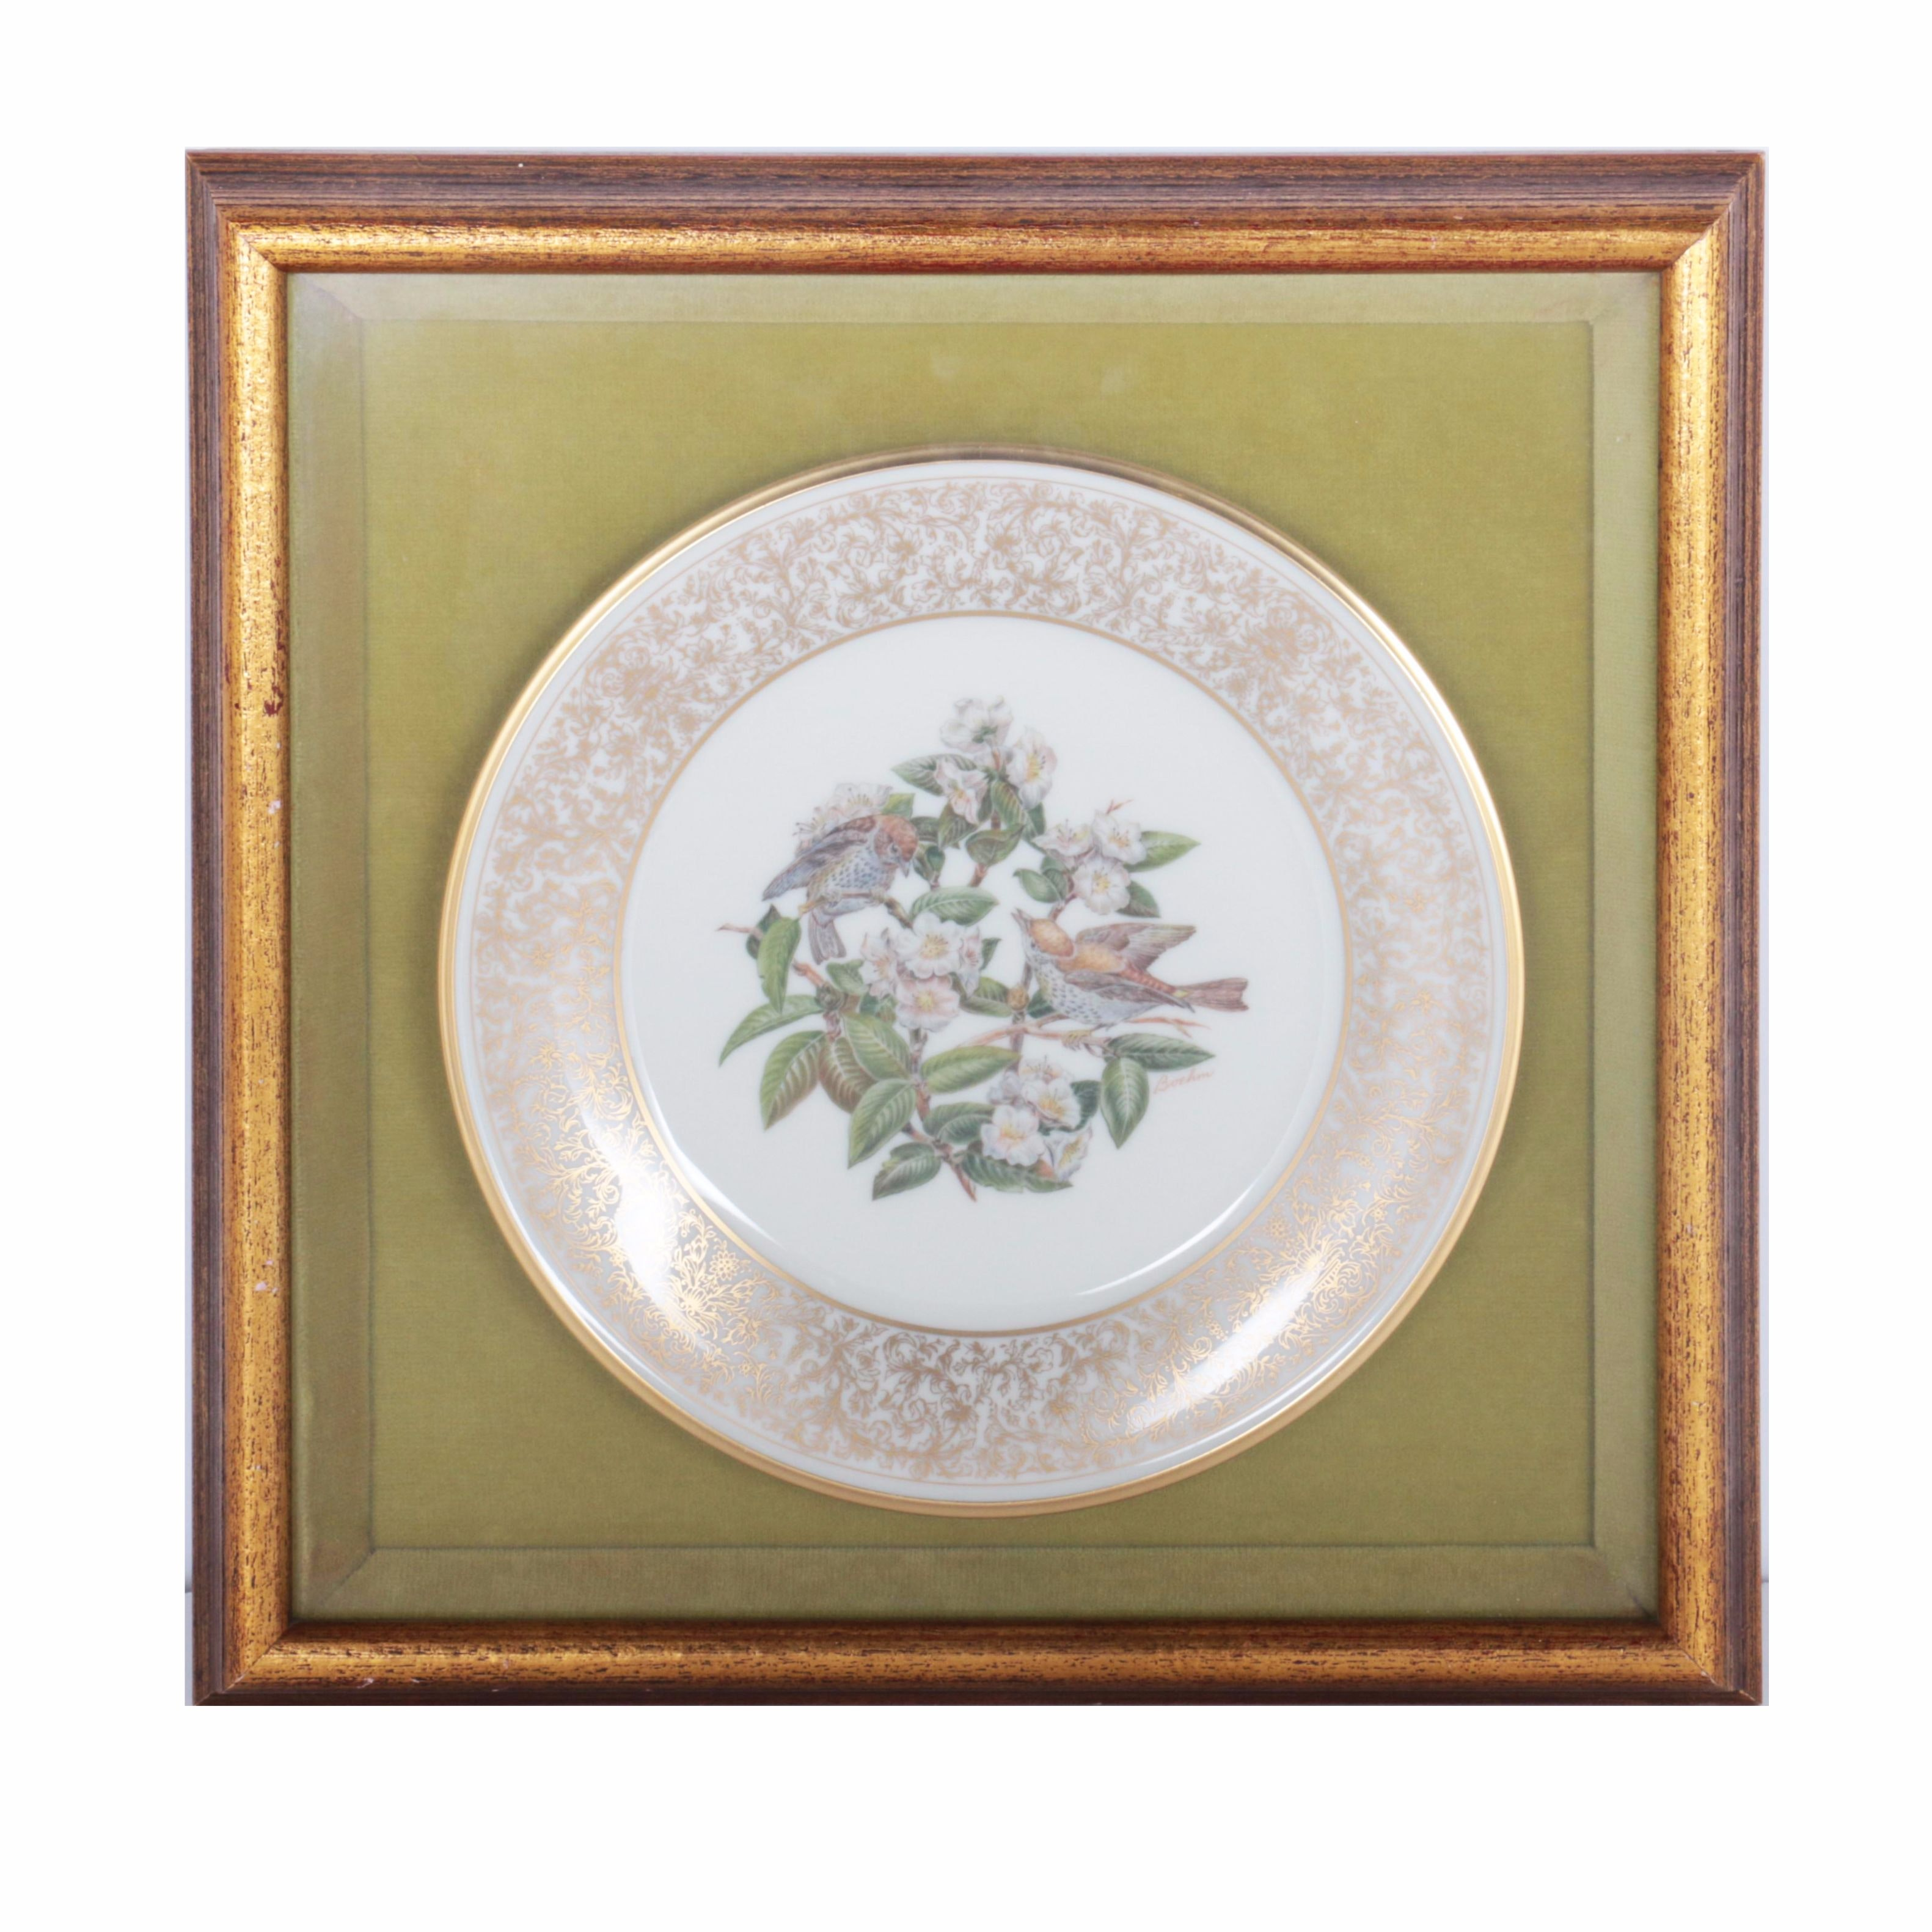 Framed Boehm Porcelain Transferware Plate with Gilt Accents